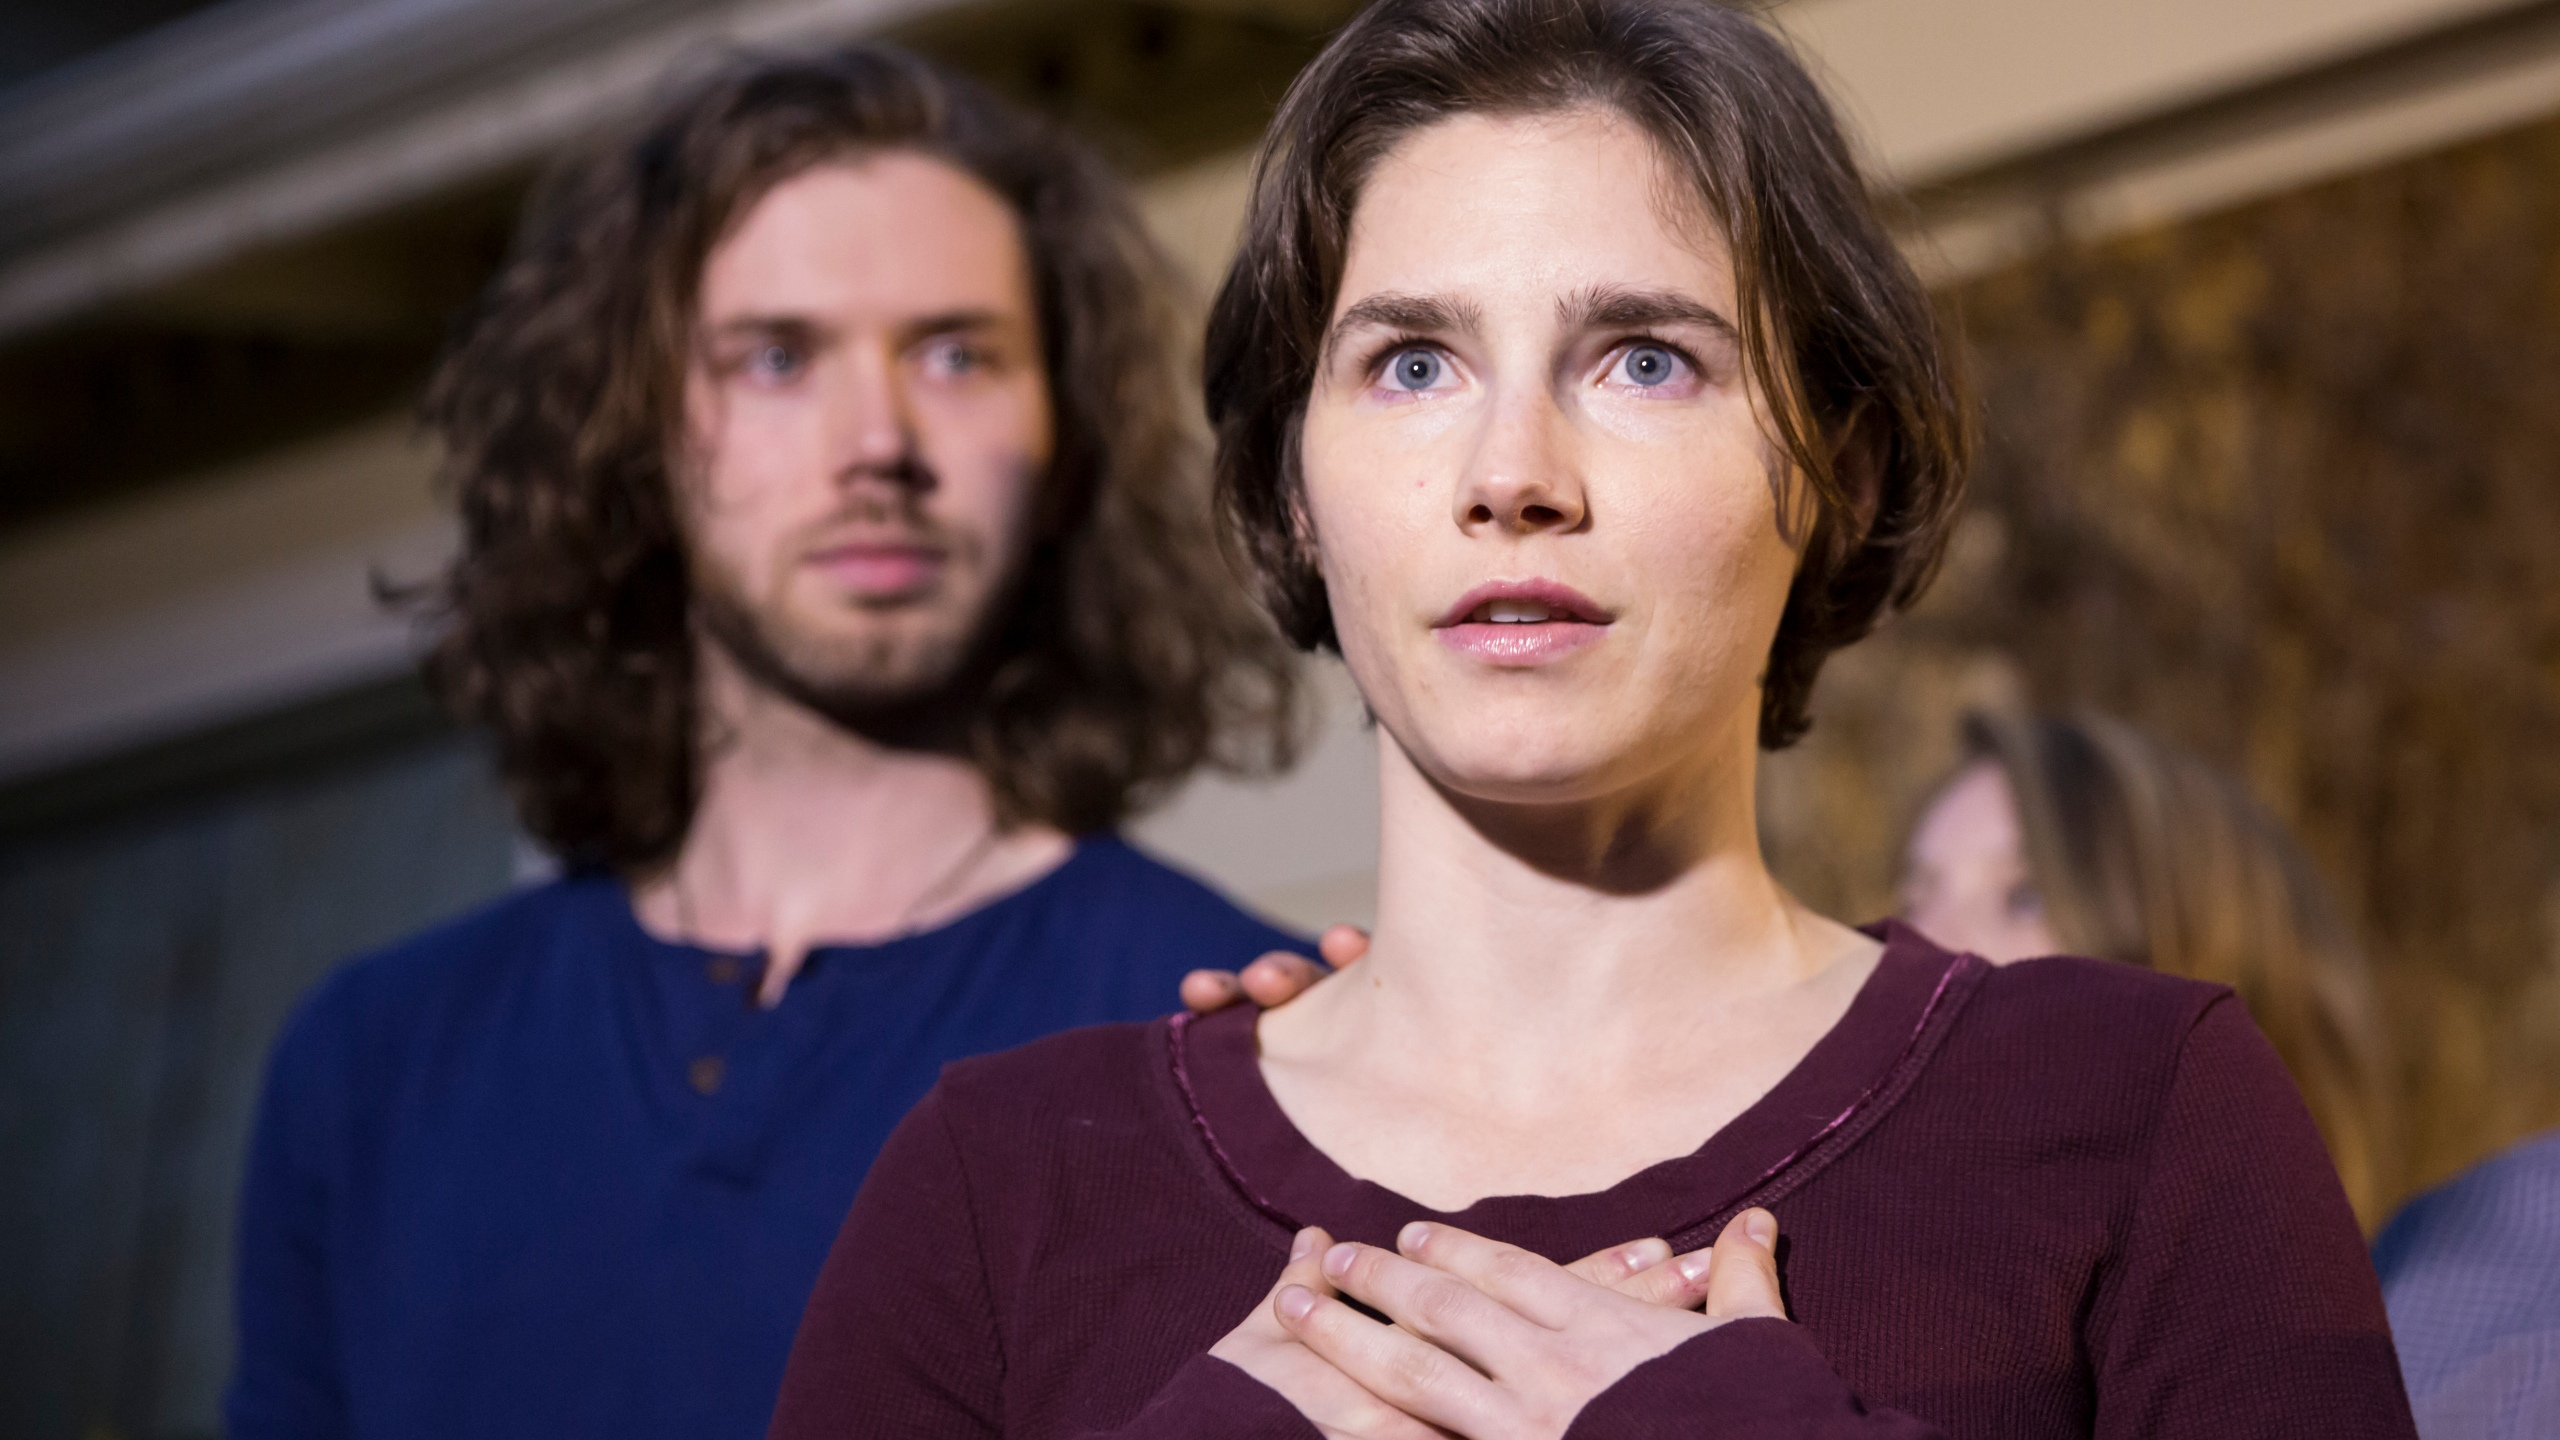 Amanda Knox speaks to the media during a brief press conference in front of her parents' home March 27, 2015 in Seattle, Washington. (Credit: Stephen Brashear/Getty Images)